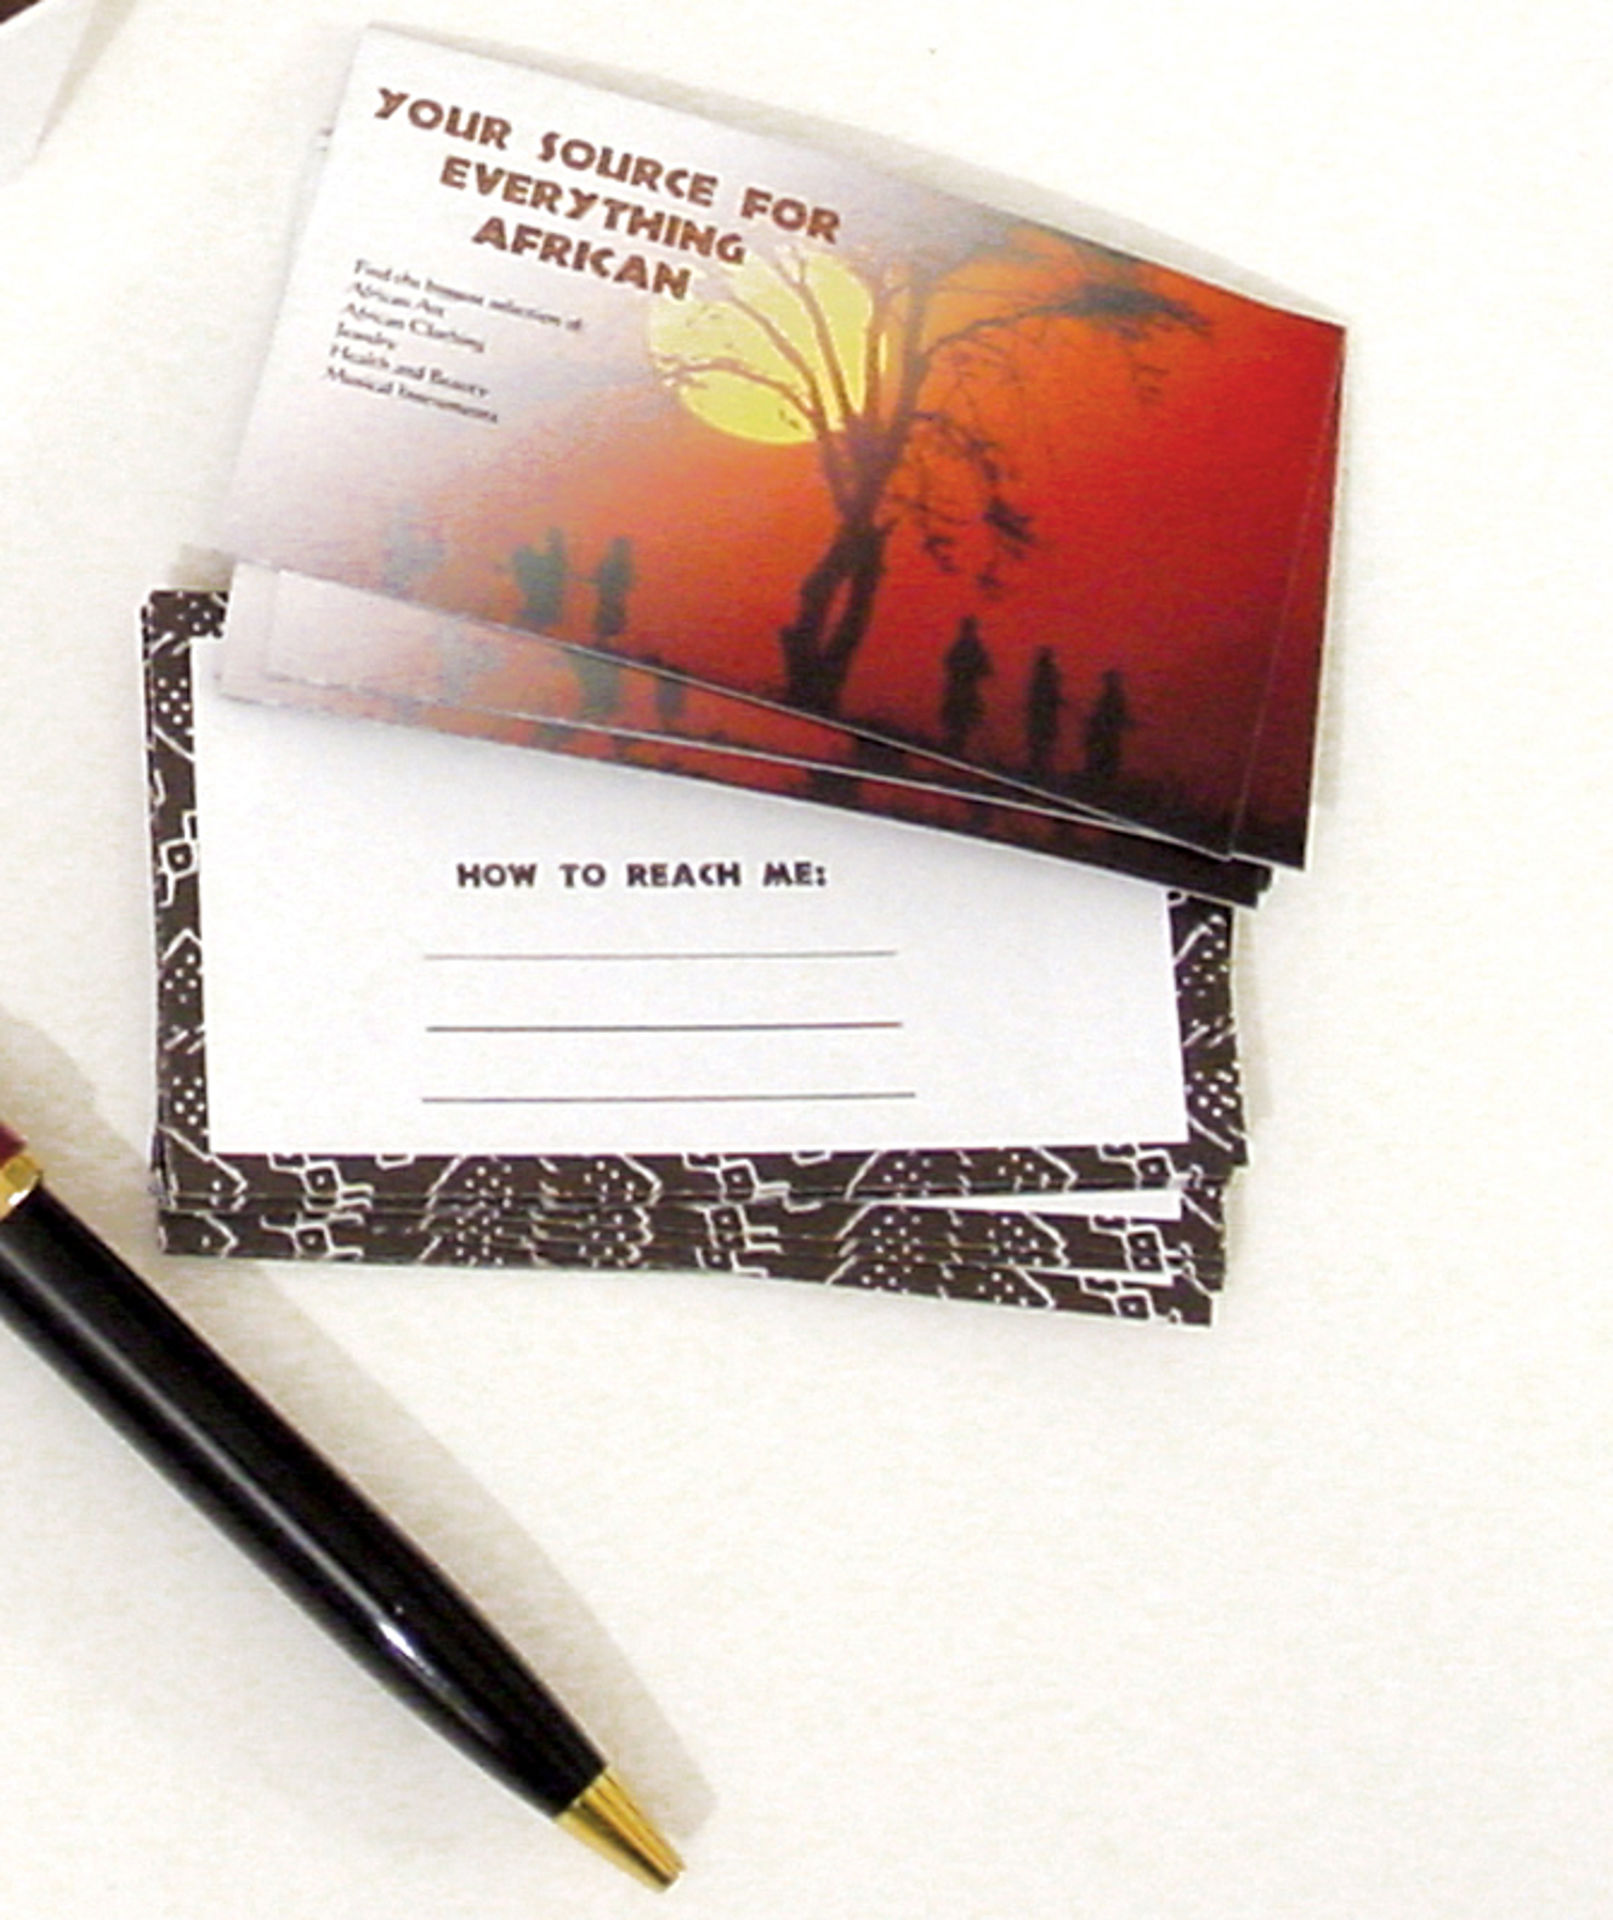 Picture of 20 African Business Cards